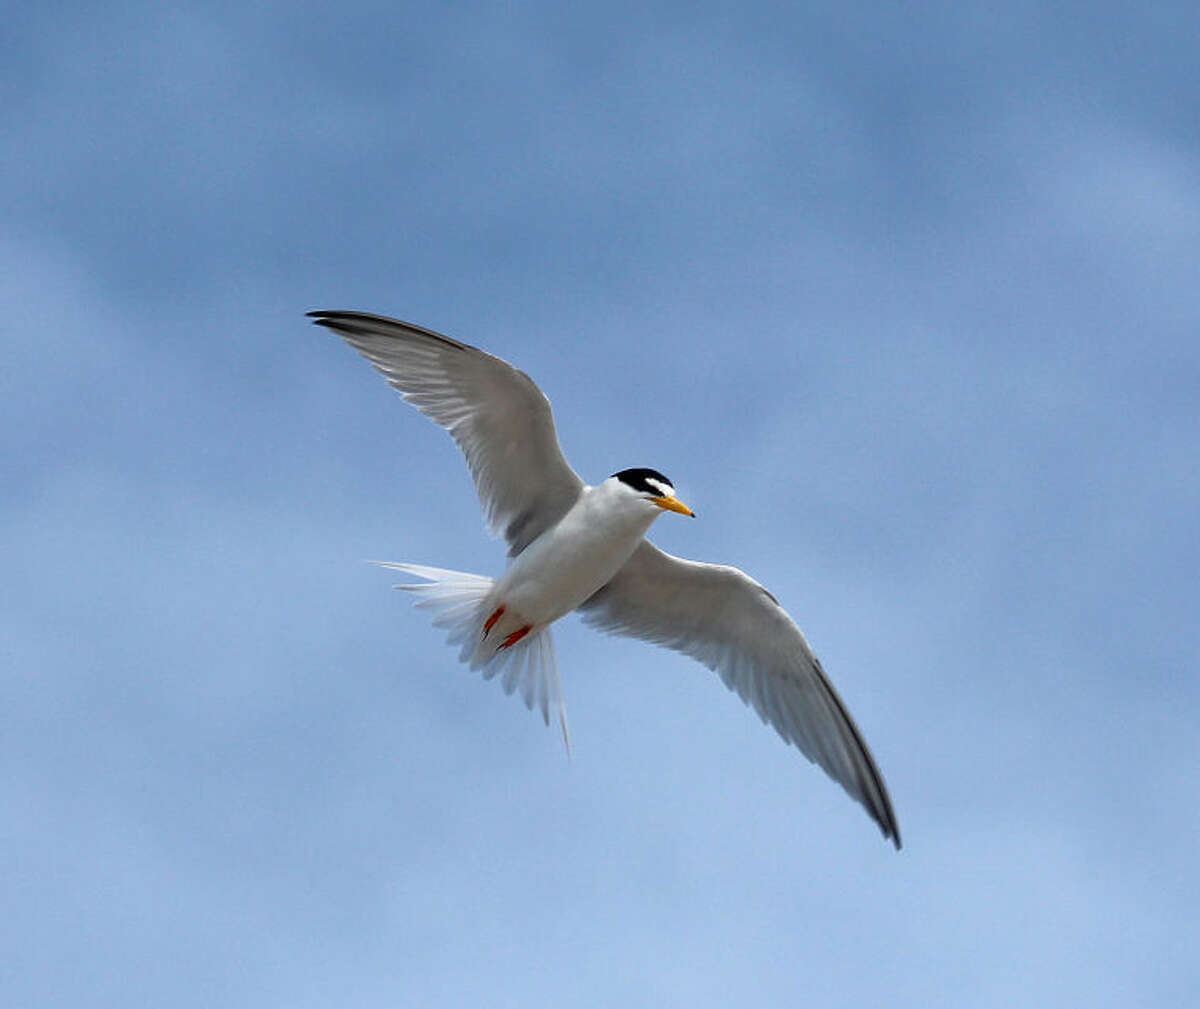 Photo by Chris Bosak A Least Tern flies over its nesting grounds at Milford Point in Milford, CT, in June 2014.